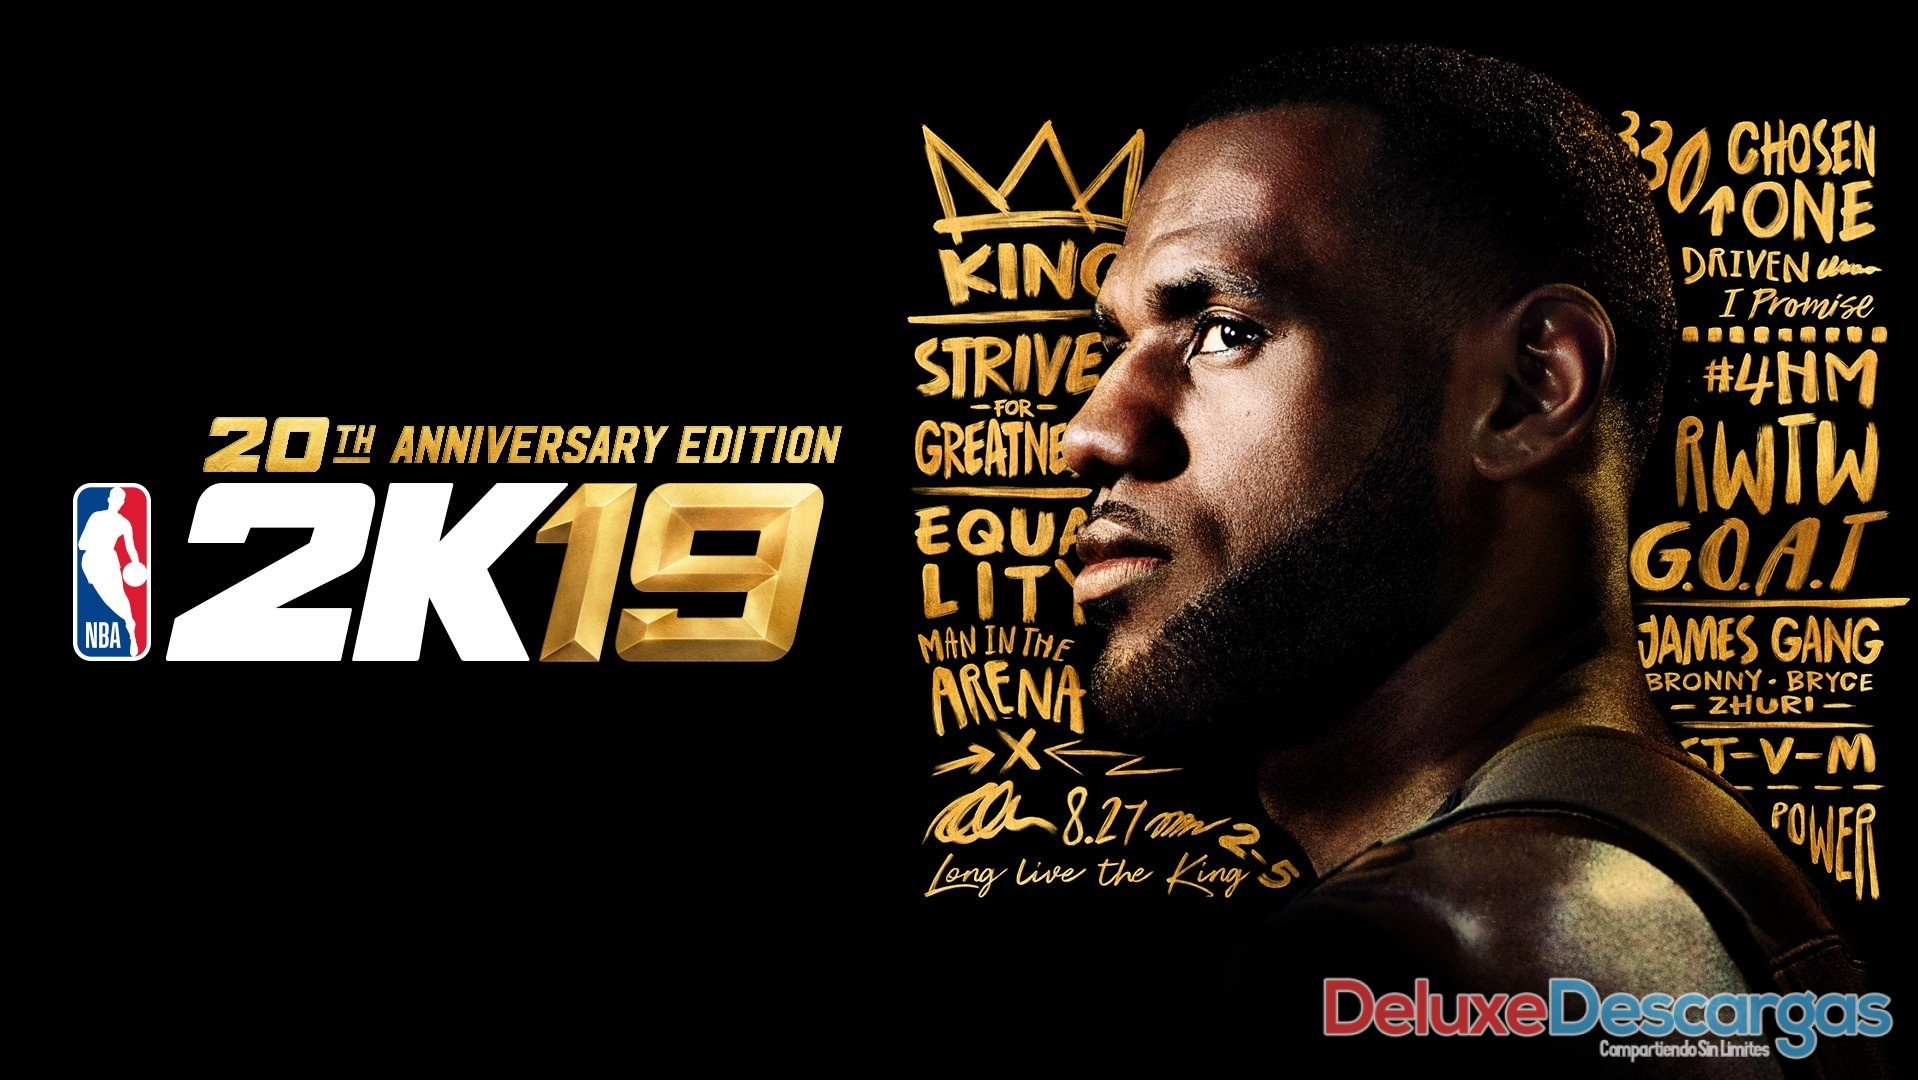 NBA 2K19 20th Anniversary Edition.jpg